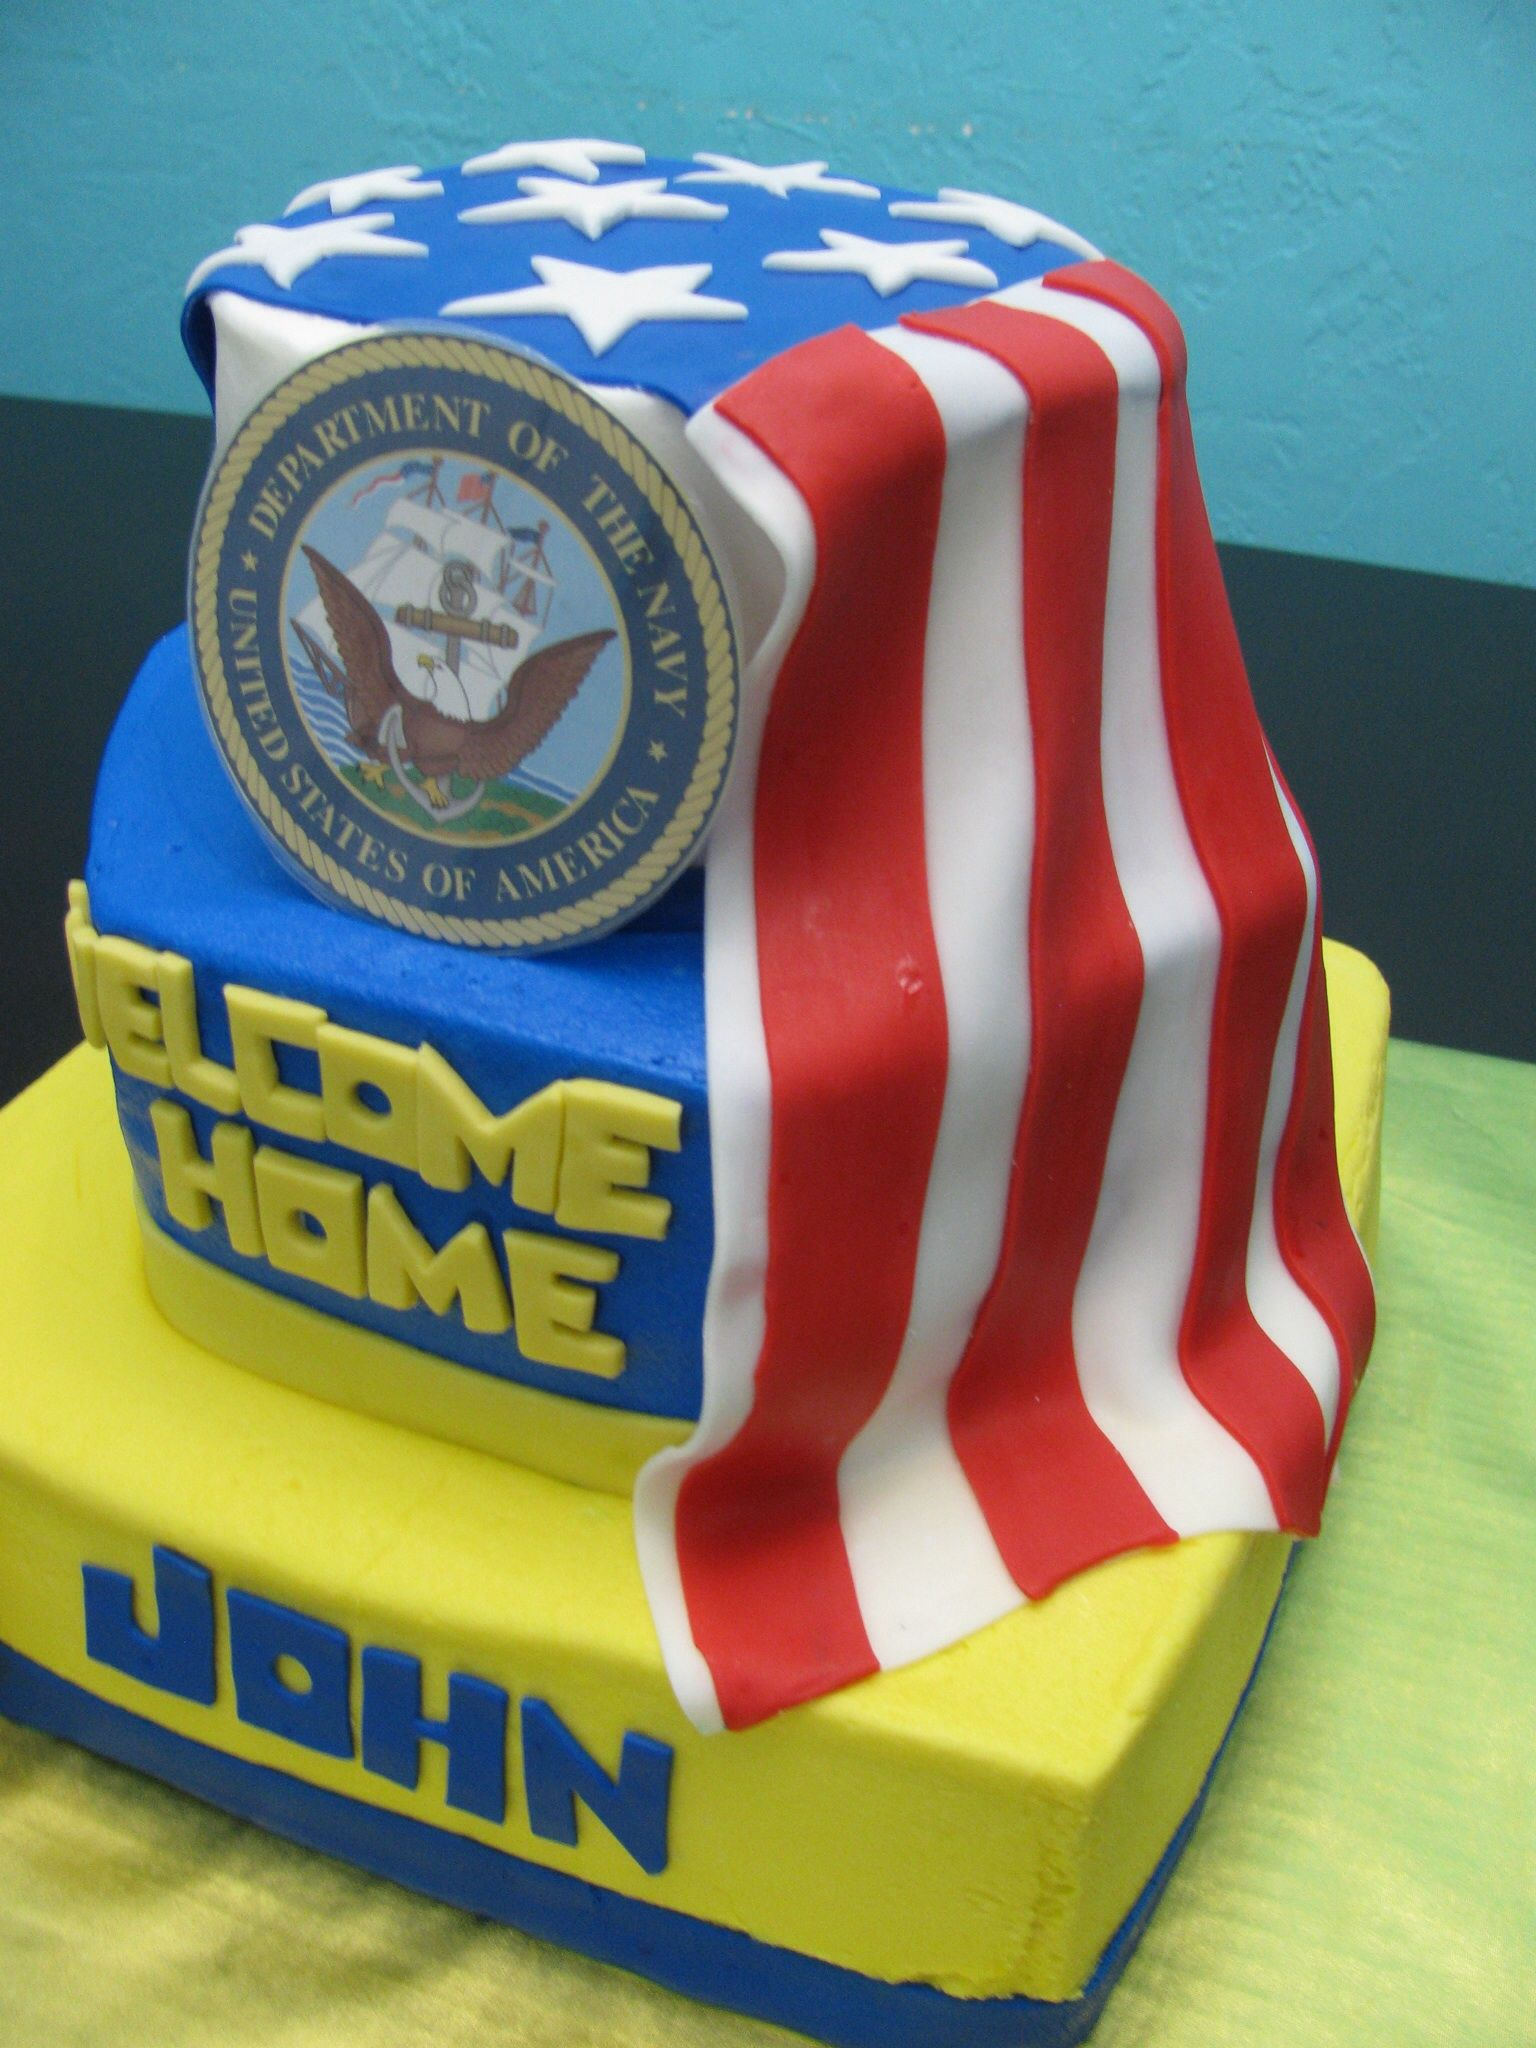 Navy welcome home cake my cakes pinterest navy cake for Welcome home cake decorations